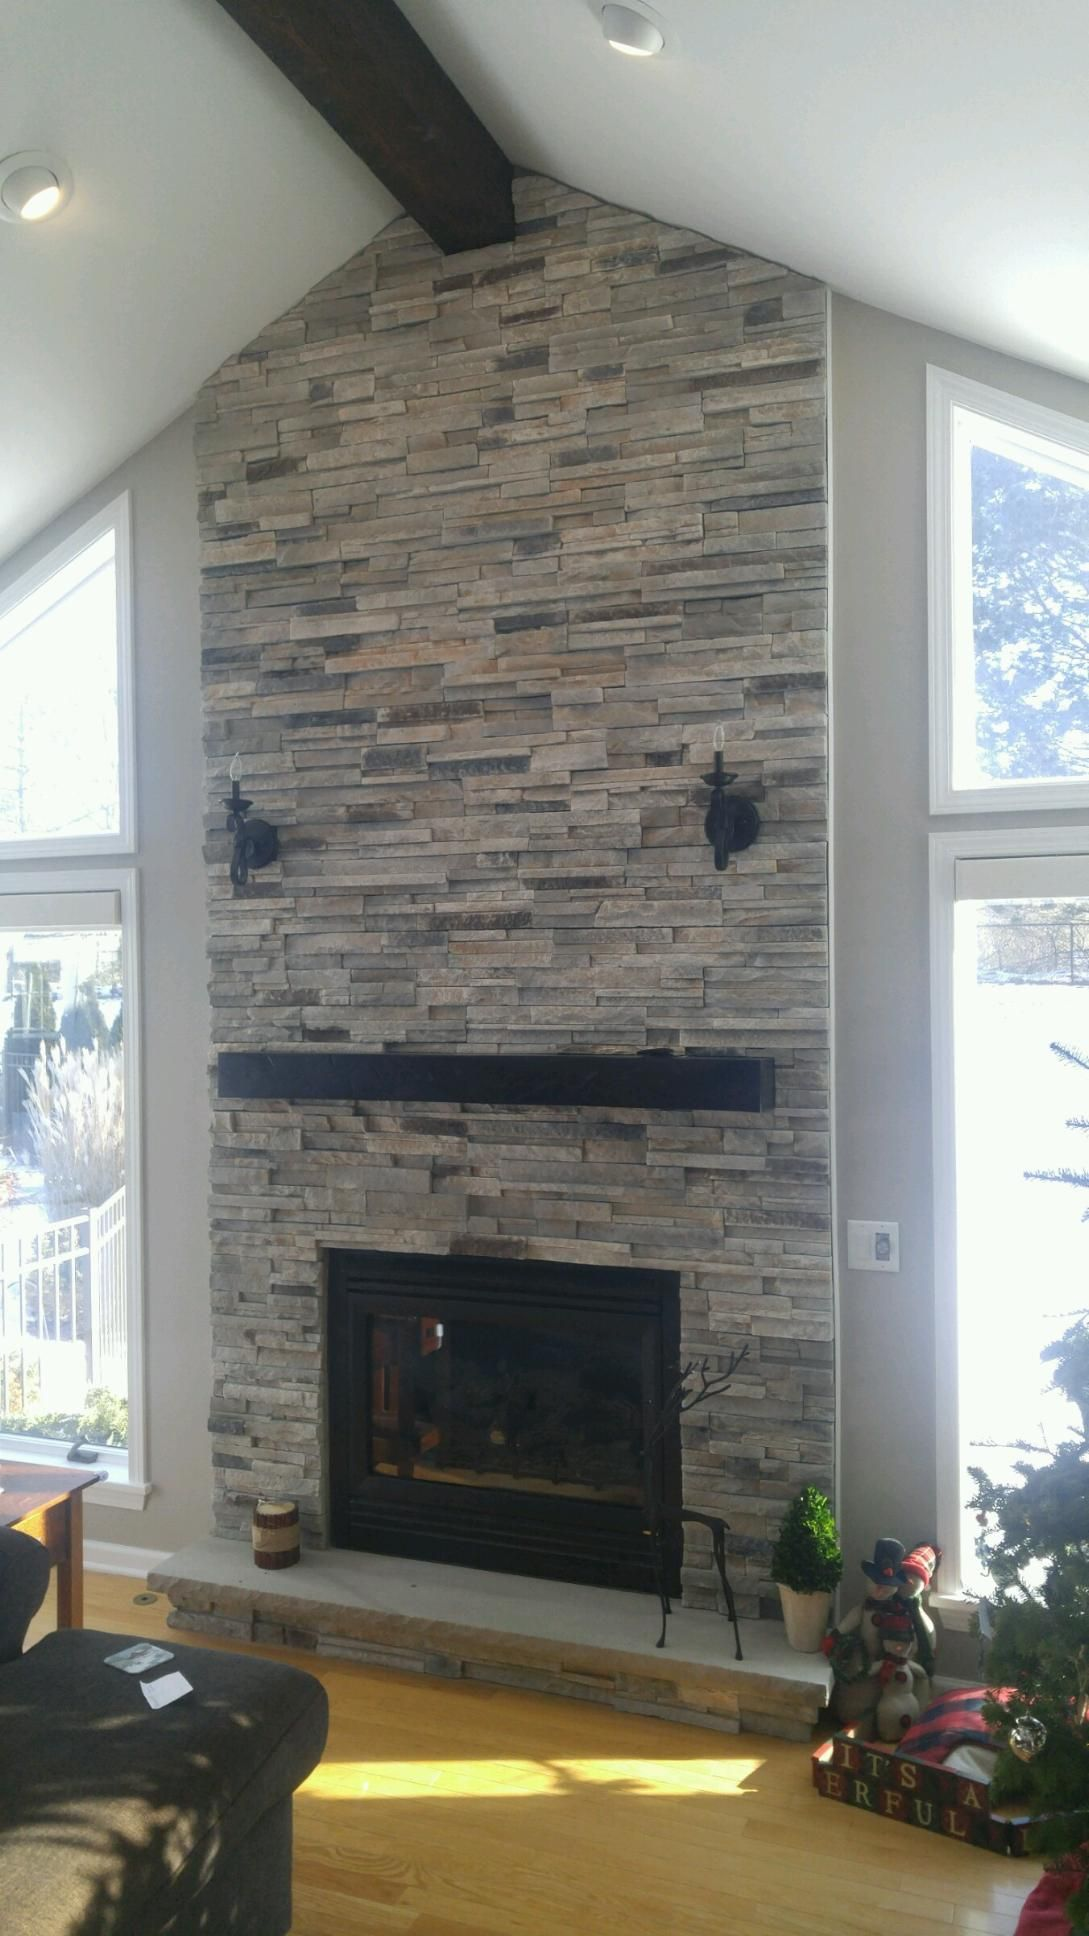 Shiplap Wall With Fireplace Boral Echo Ridge Alpine Ledgestone Fireplace Surround